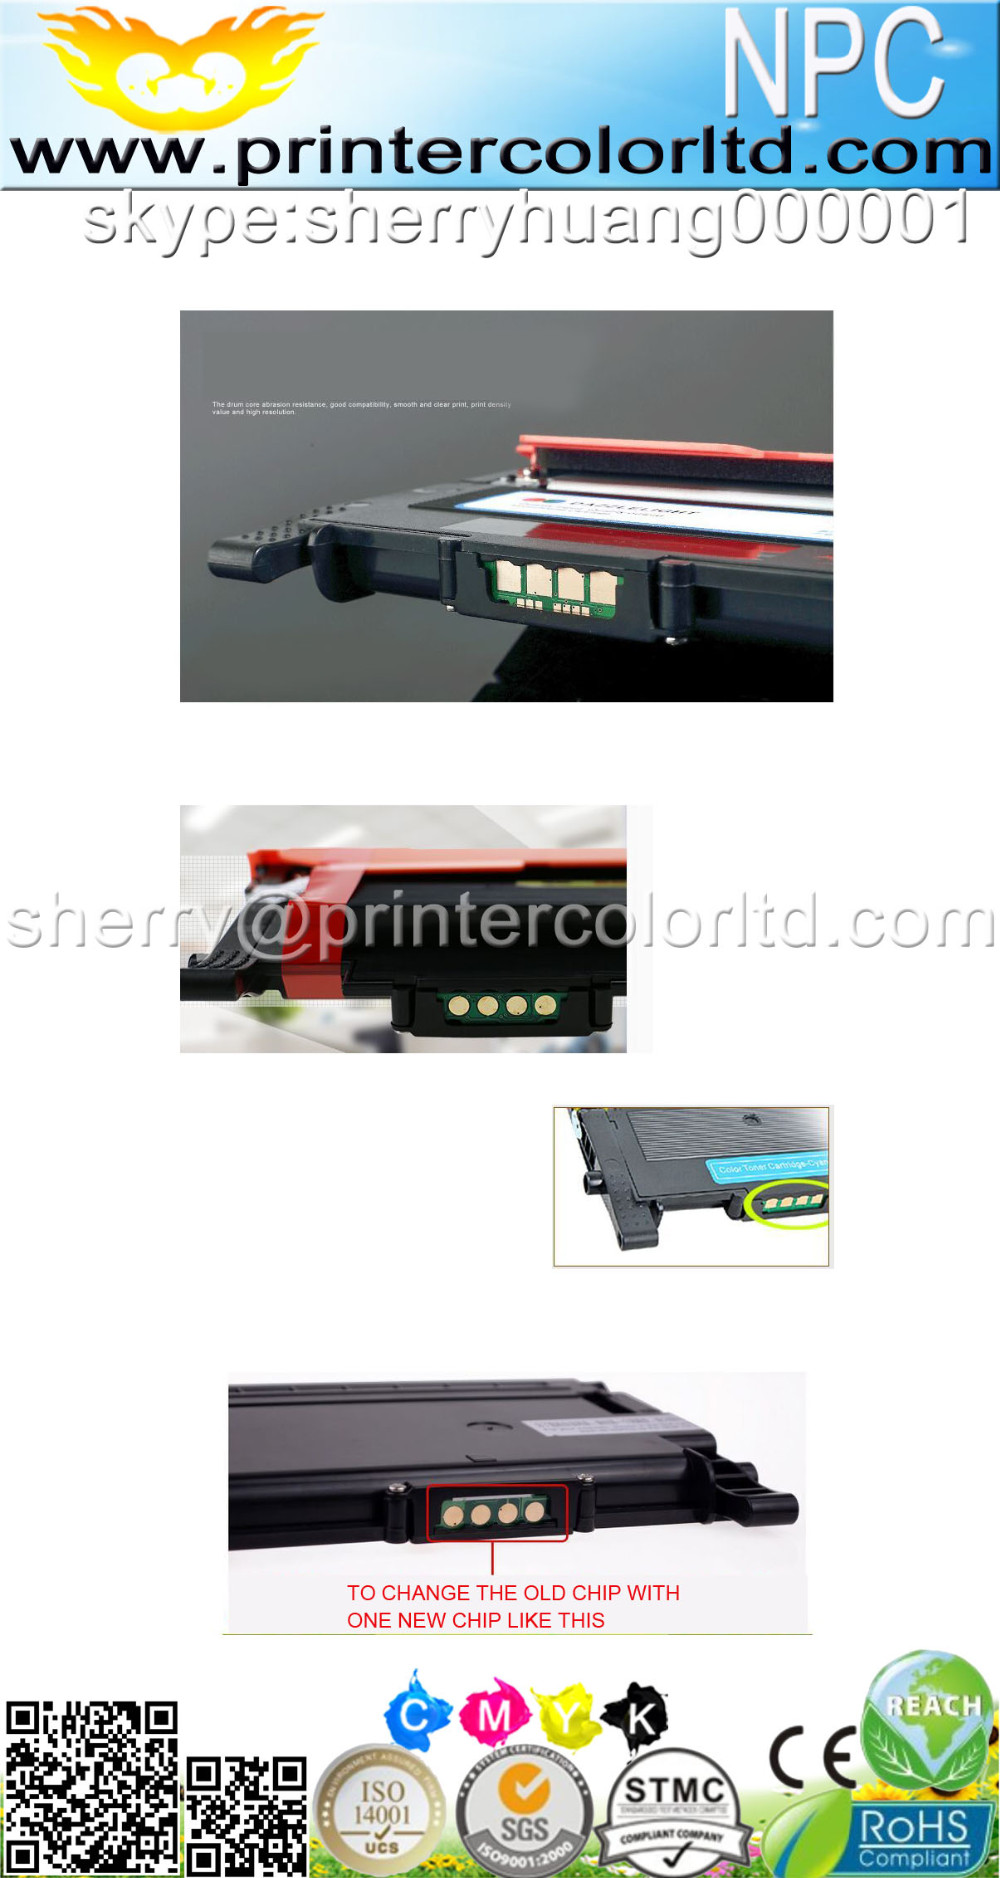 CLT-404S Compatible Toner Cartridge Chip for samsung SL-C430 SL-C430W SL-C480 SL-C480W SL-C480FN Printer Chip Resetter 404